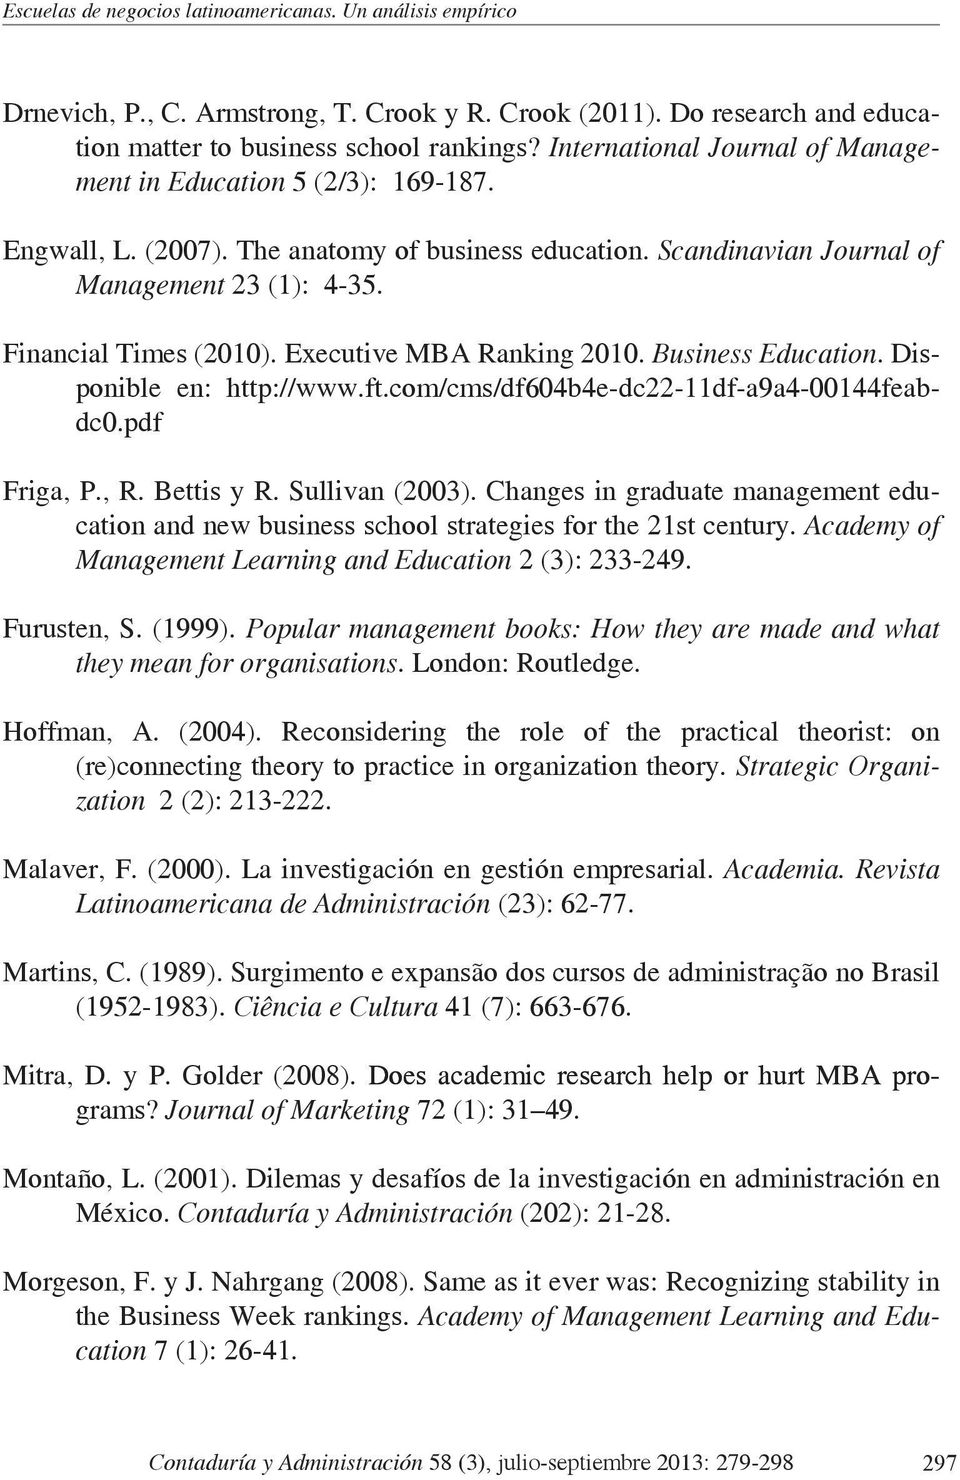 Executive MBA Ranking 2010. Business Education. Disponible en: http://www.ft.com/cms/df604b4e-dc22-11df-a9a4-00144feabdc0.pdf Friga, P., R. Bettis y R. Sullivan (2003).